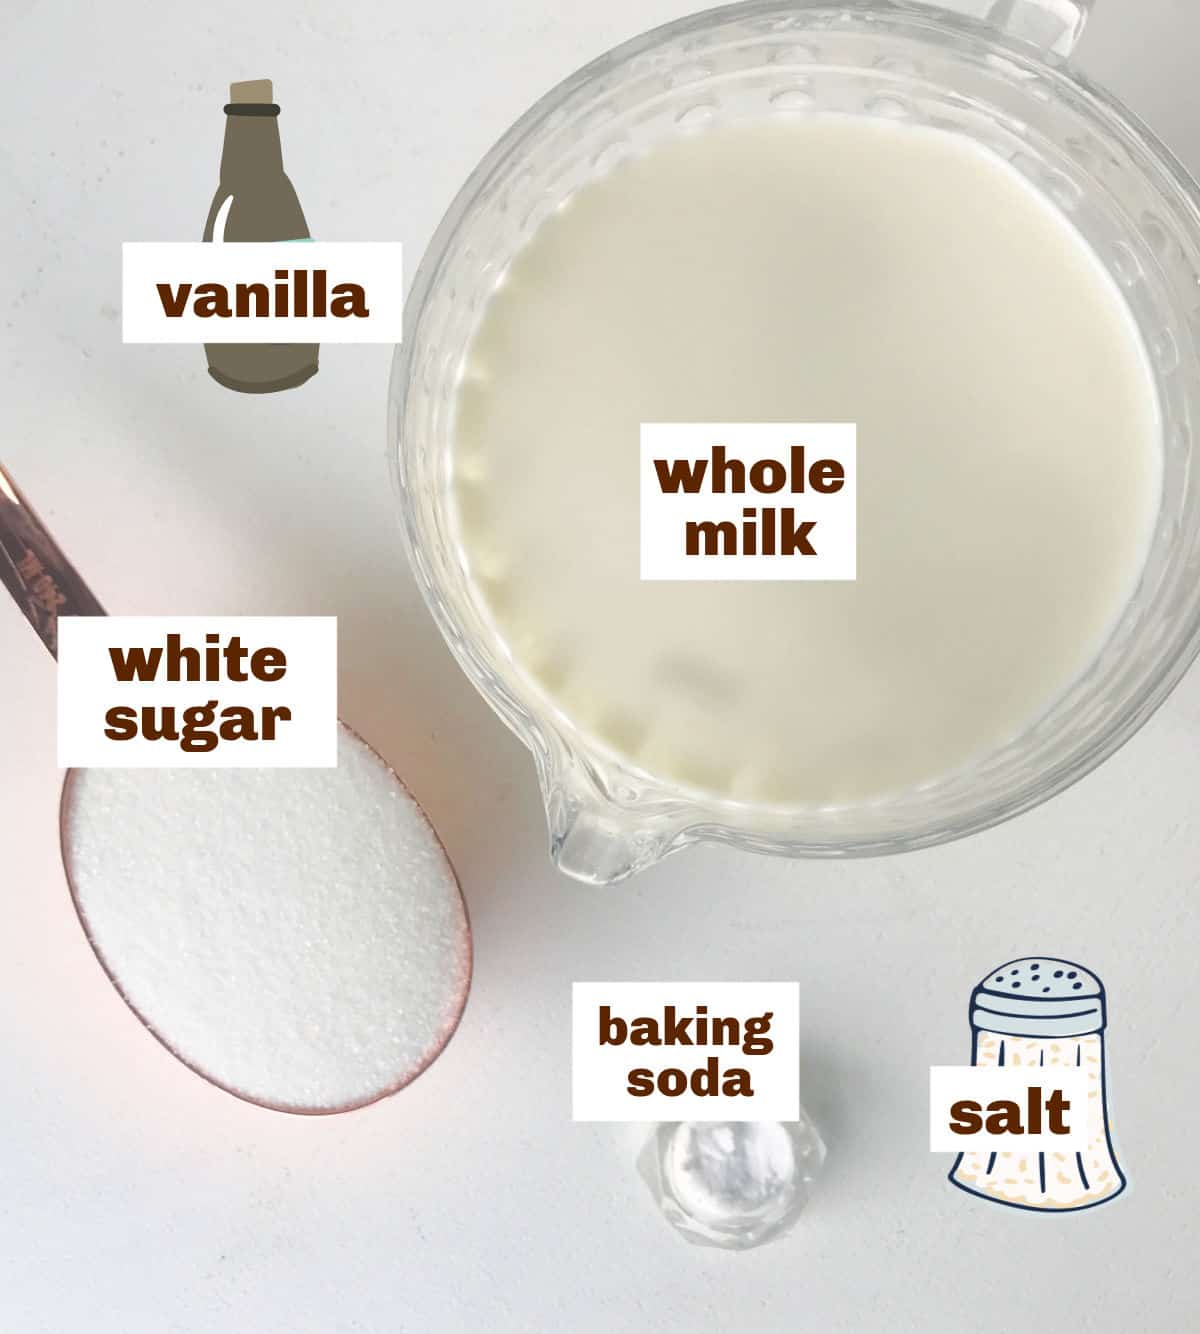 Ingredients for making dulce de leche including milk and sugar in different containers on white surface